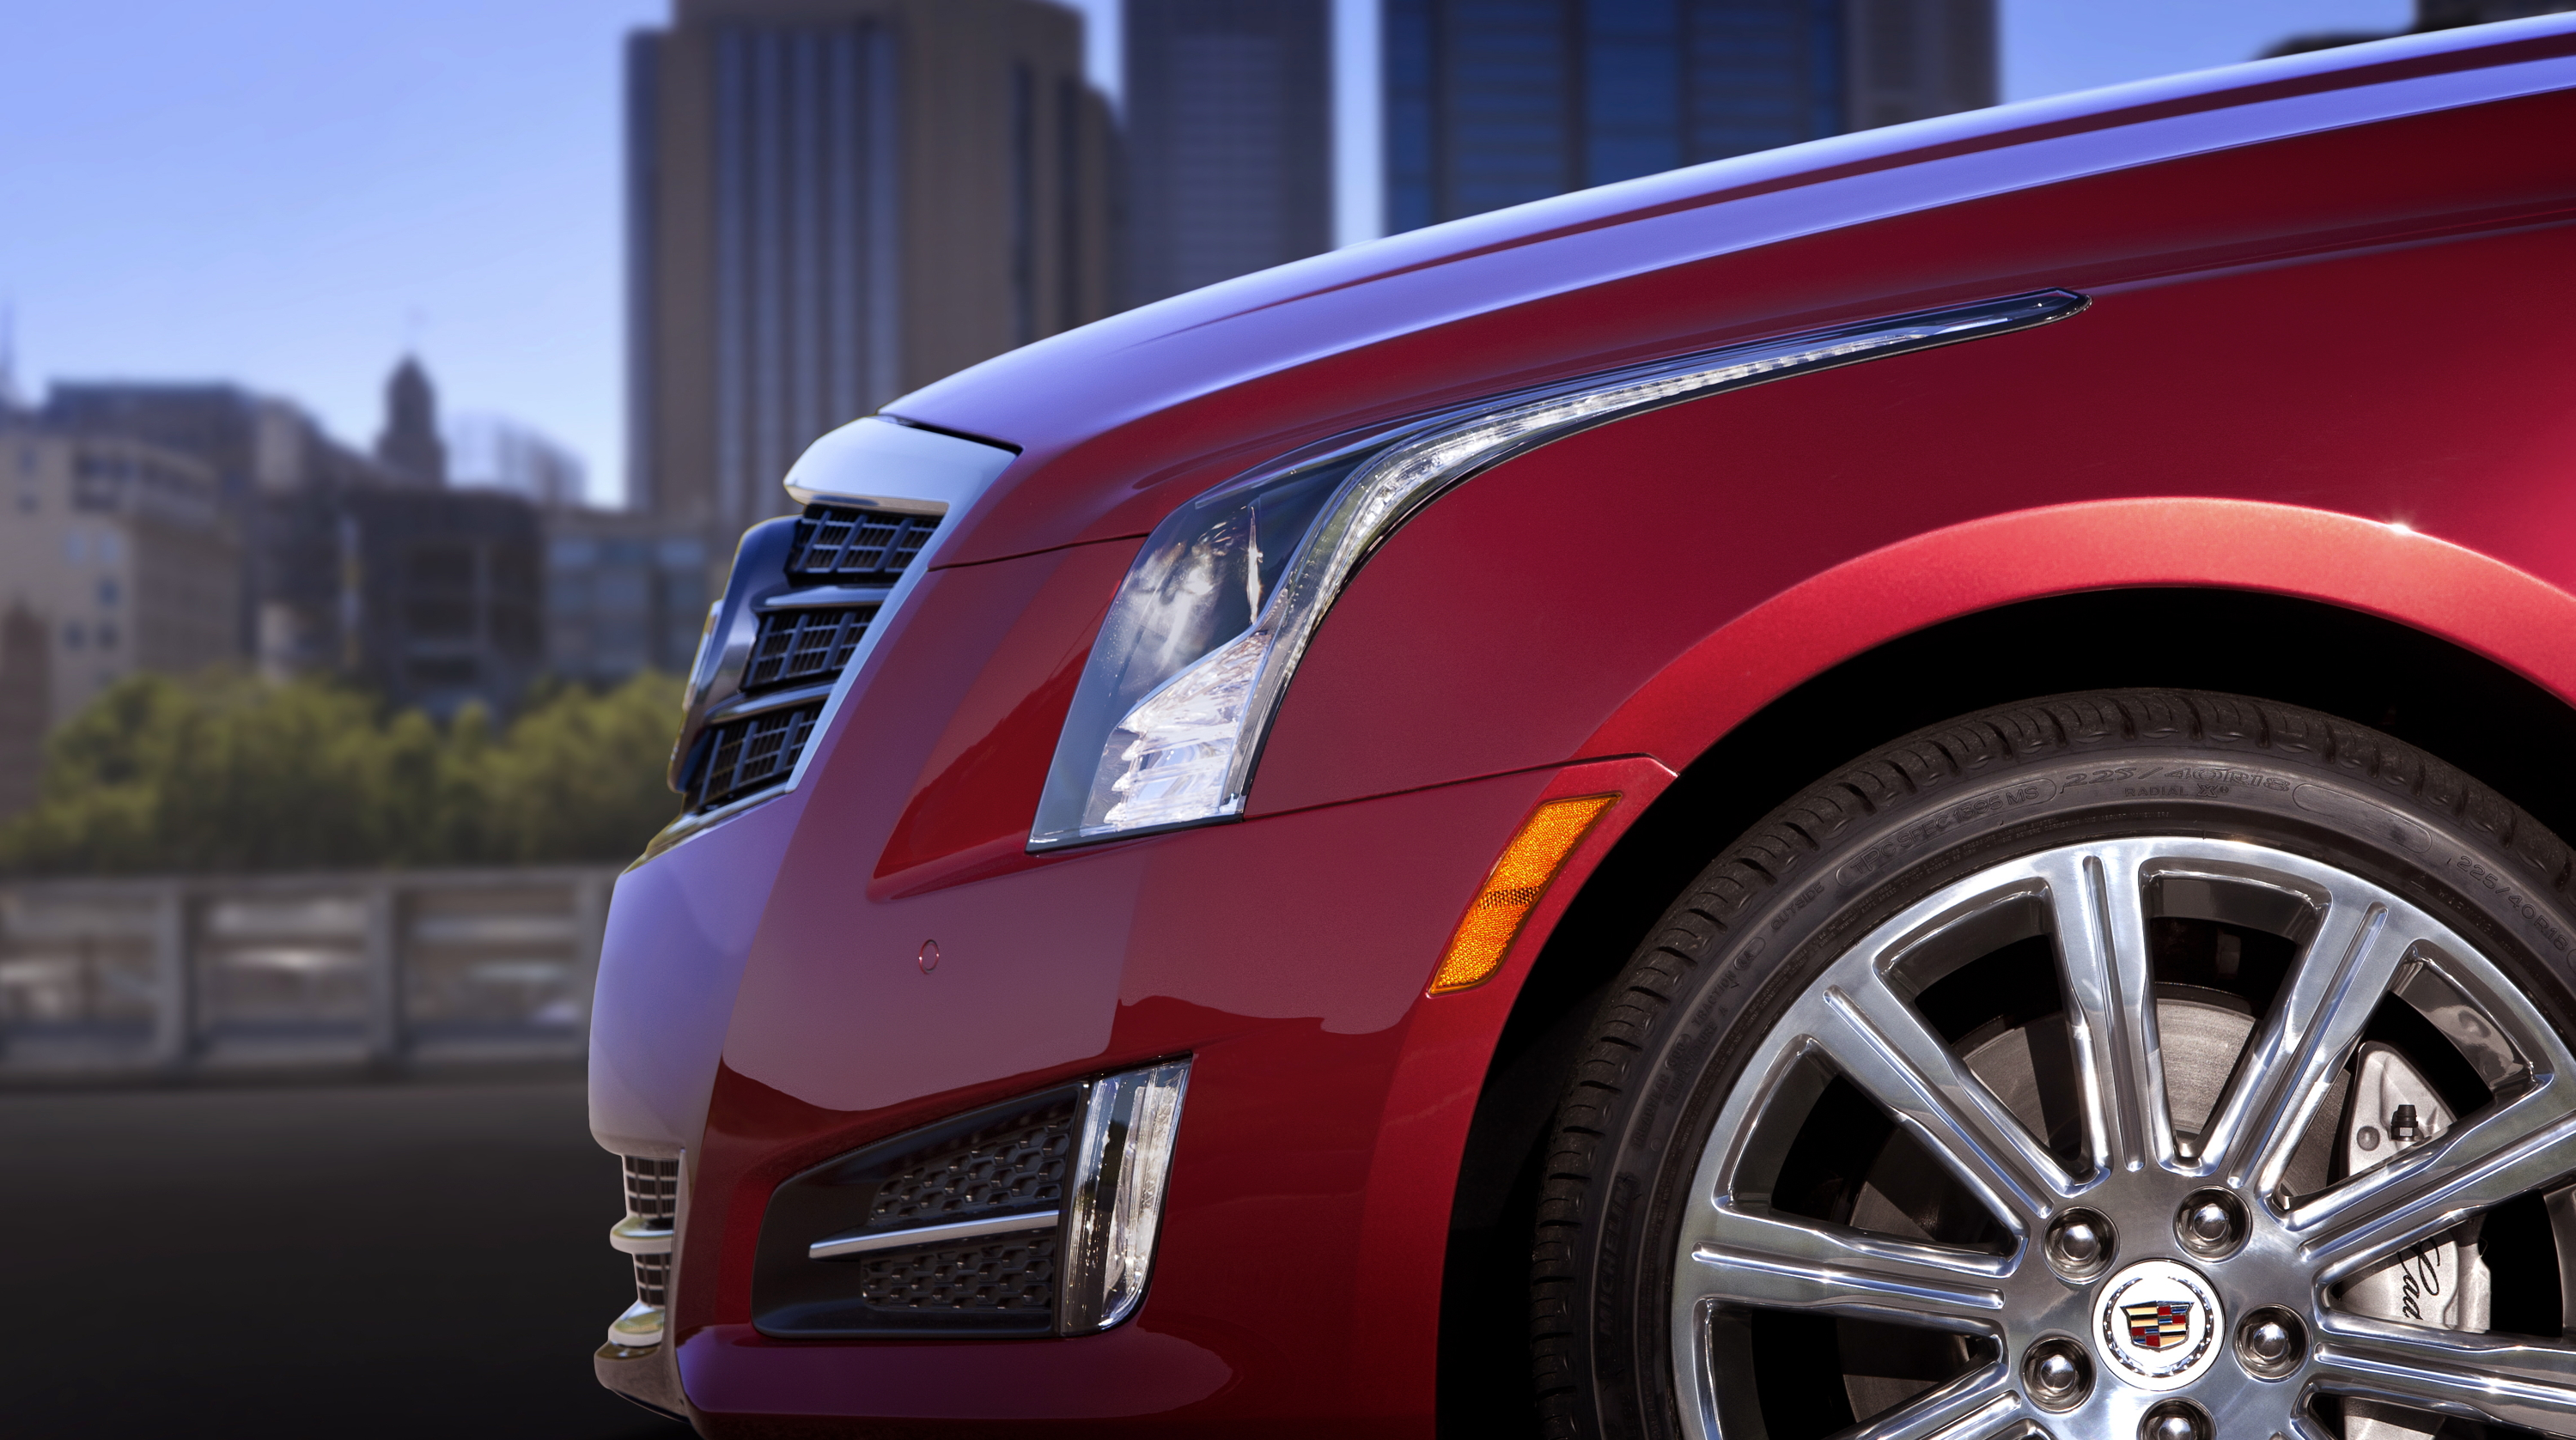 The 2013 Cadillac ATS compact luxury sedan is a new expression of Cadillacâ??s Art & Science philosophy, built on a foundation of quick, nimble fun-to-drive dynamics and mass efficiency. Developed on an all-new, lightweight vehicle architecture, the ATS expands Cadillacâ??s portfolio into a crucial global segment and creates an entry into the Cadillac brand for a new group of luxury consumers.